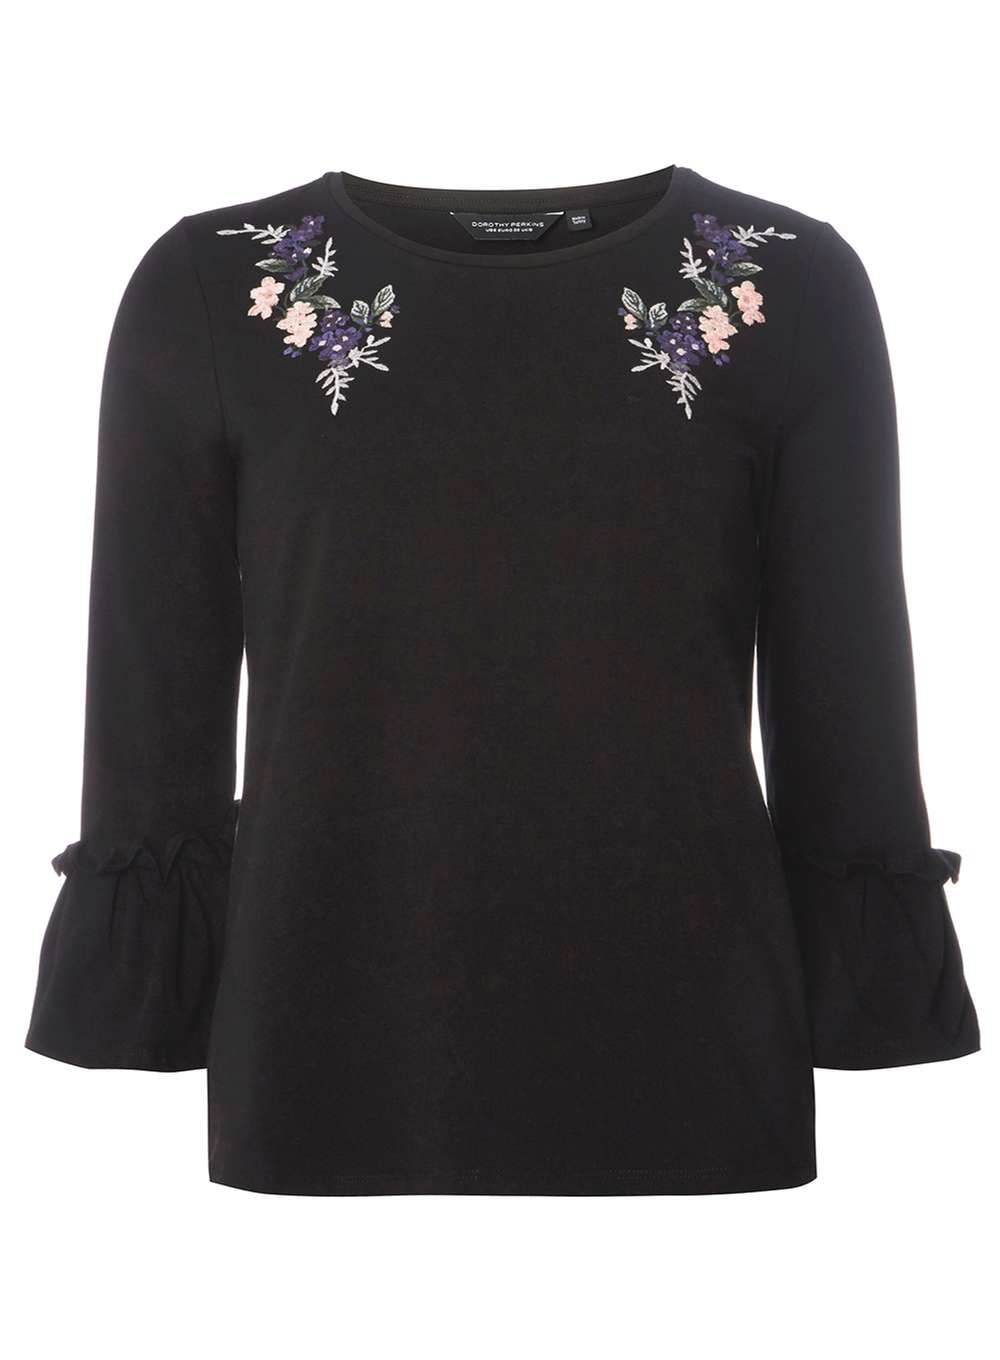 d86a18cfaa **Tall Black Floral Embroidered Flute Sleeve Top - Tops & T-Shirts -  Clothing - Dorothy Perkins United States